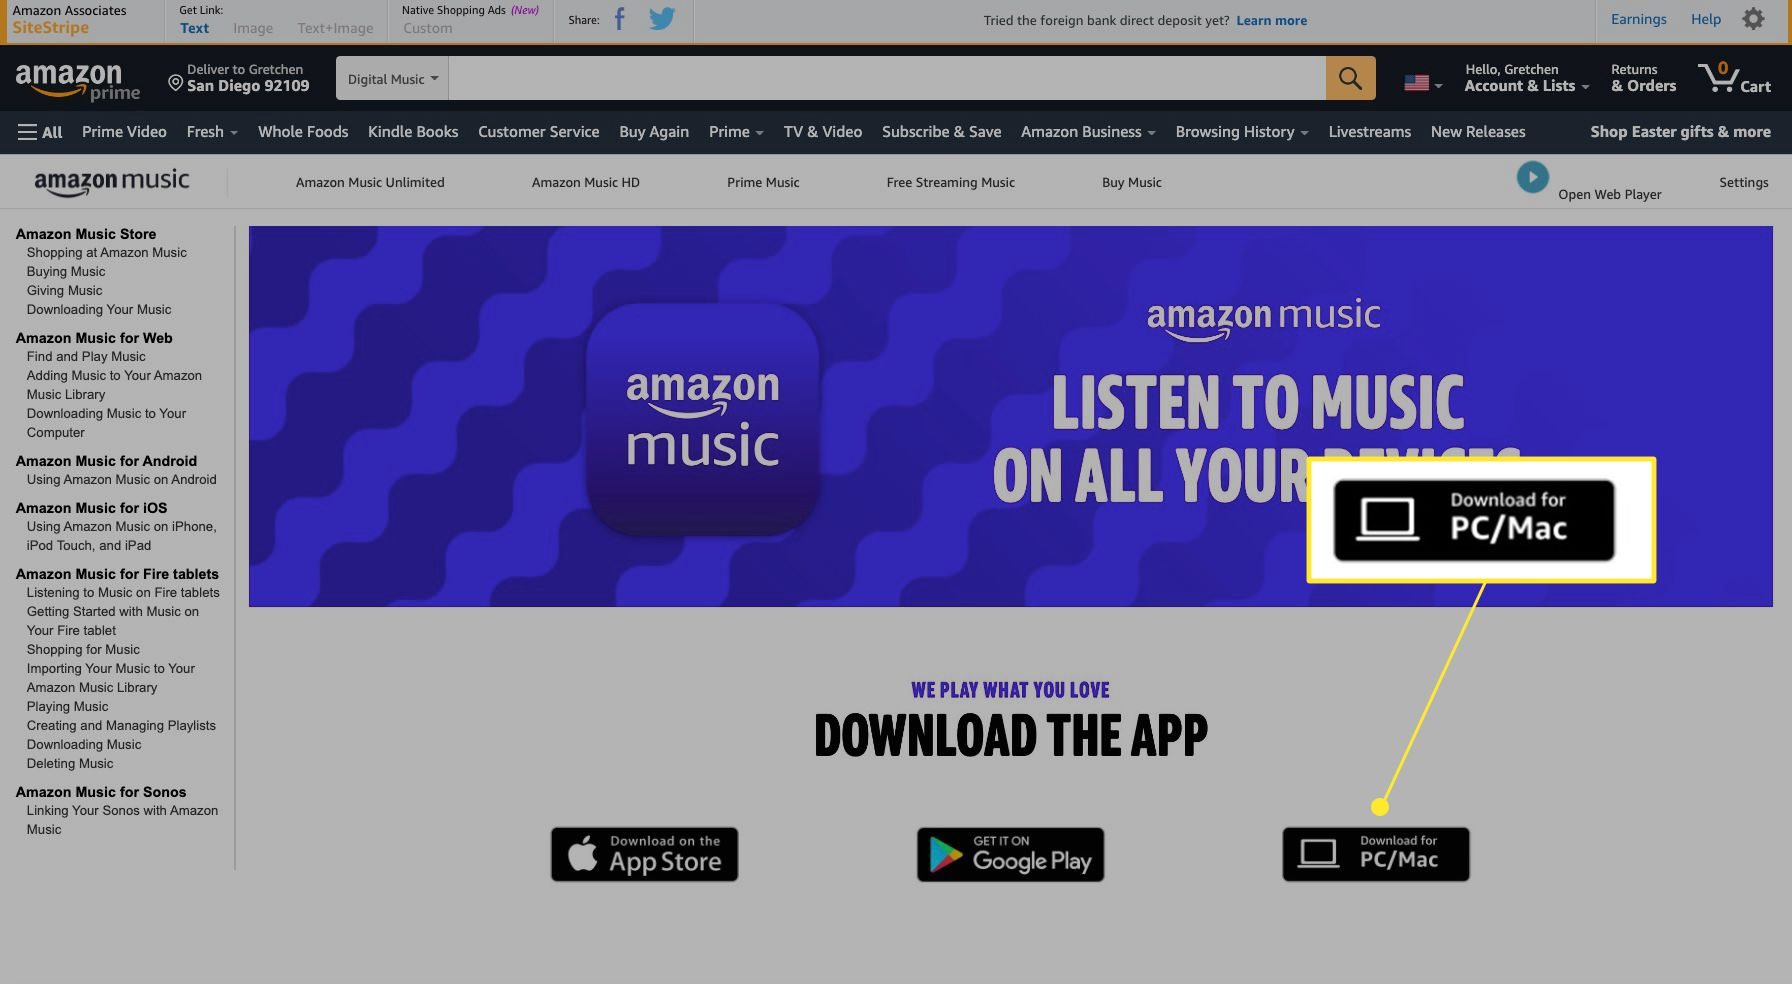 Amazon Music website with Download for PC/Mac highlighted